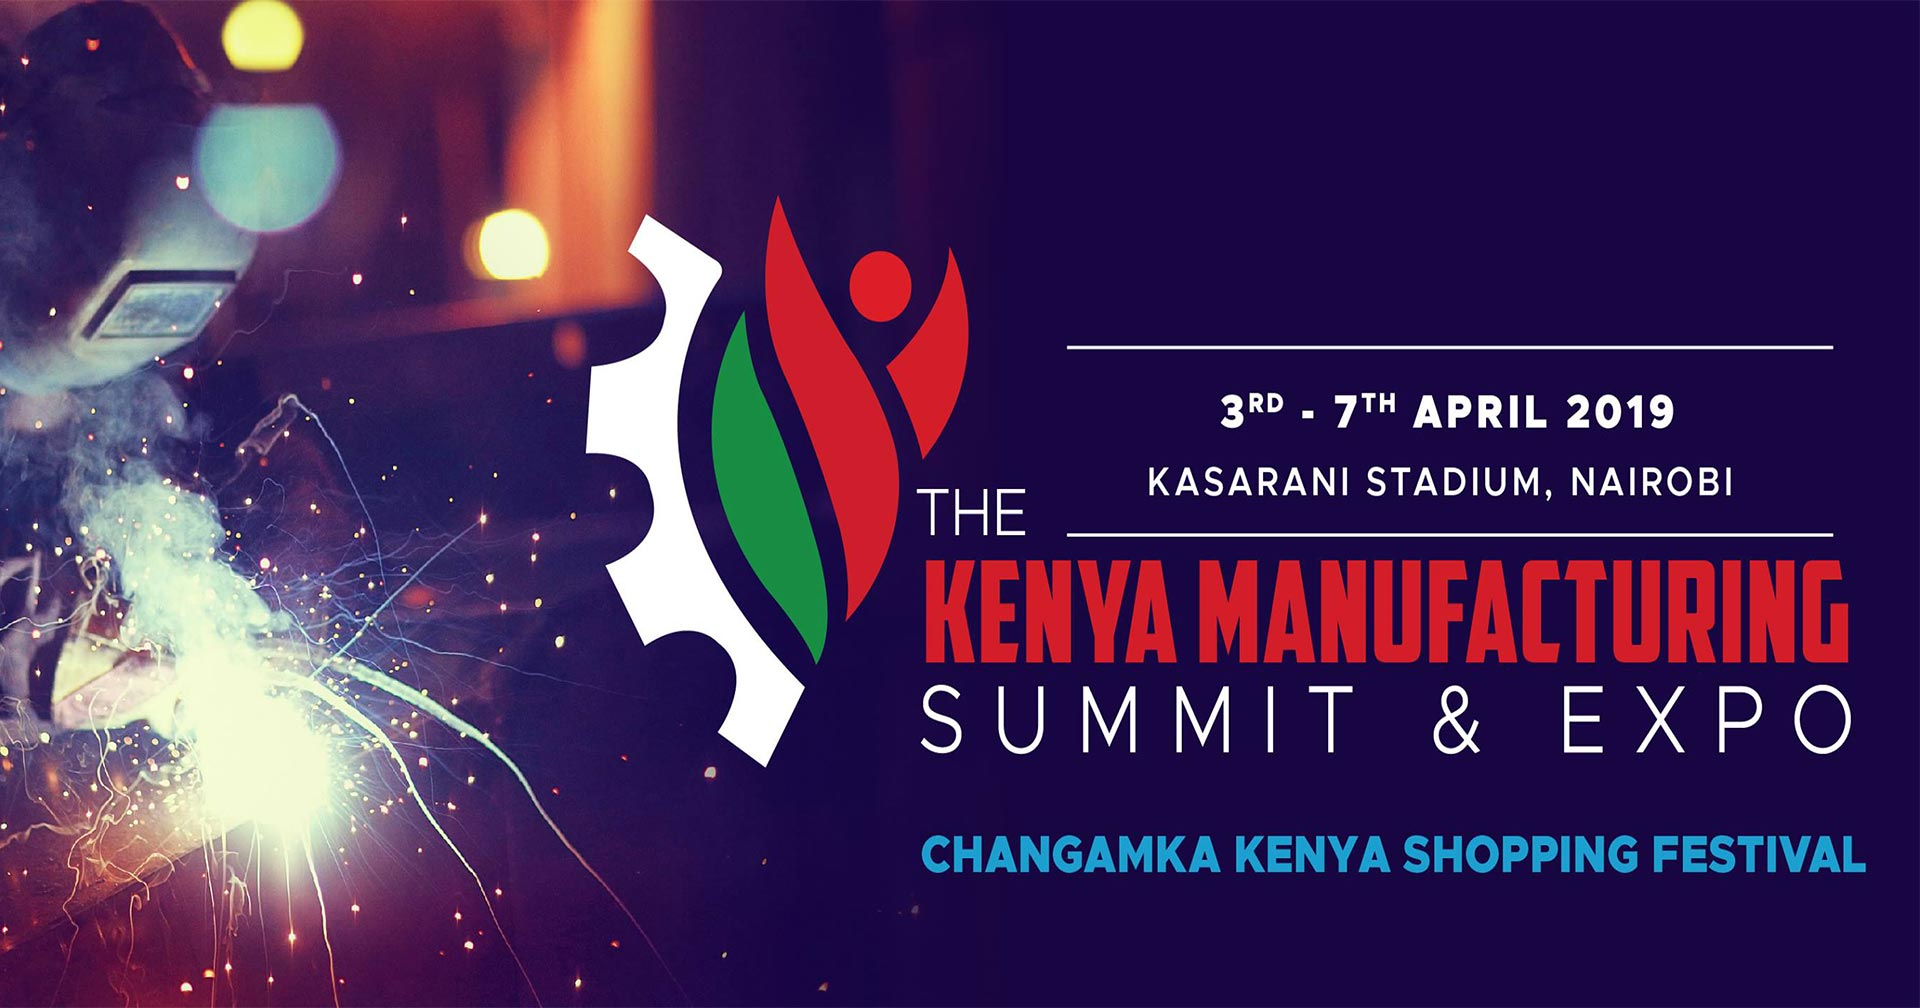 Be Part Of The Biggest Manufacturing Festival In Kenya